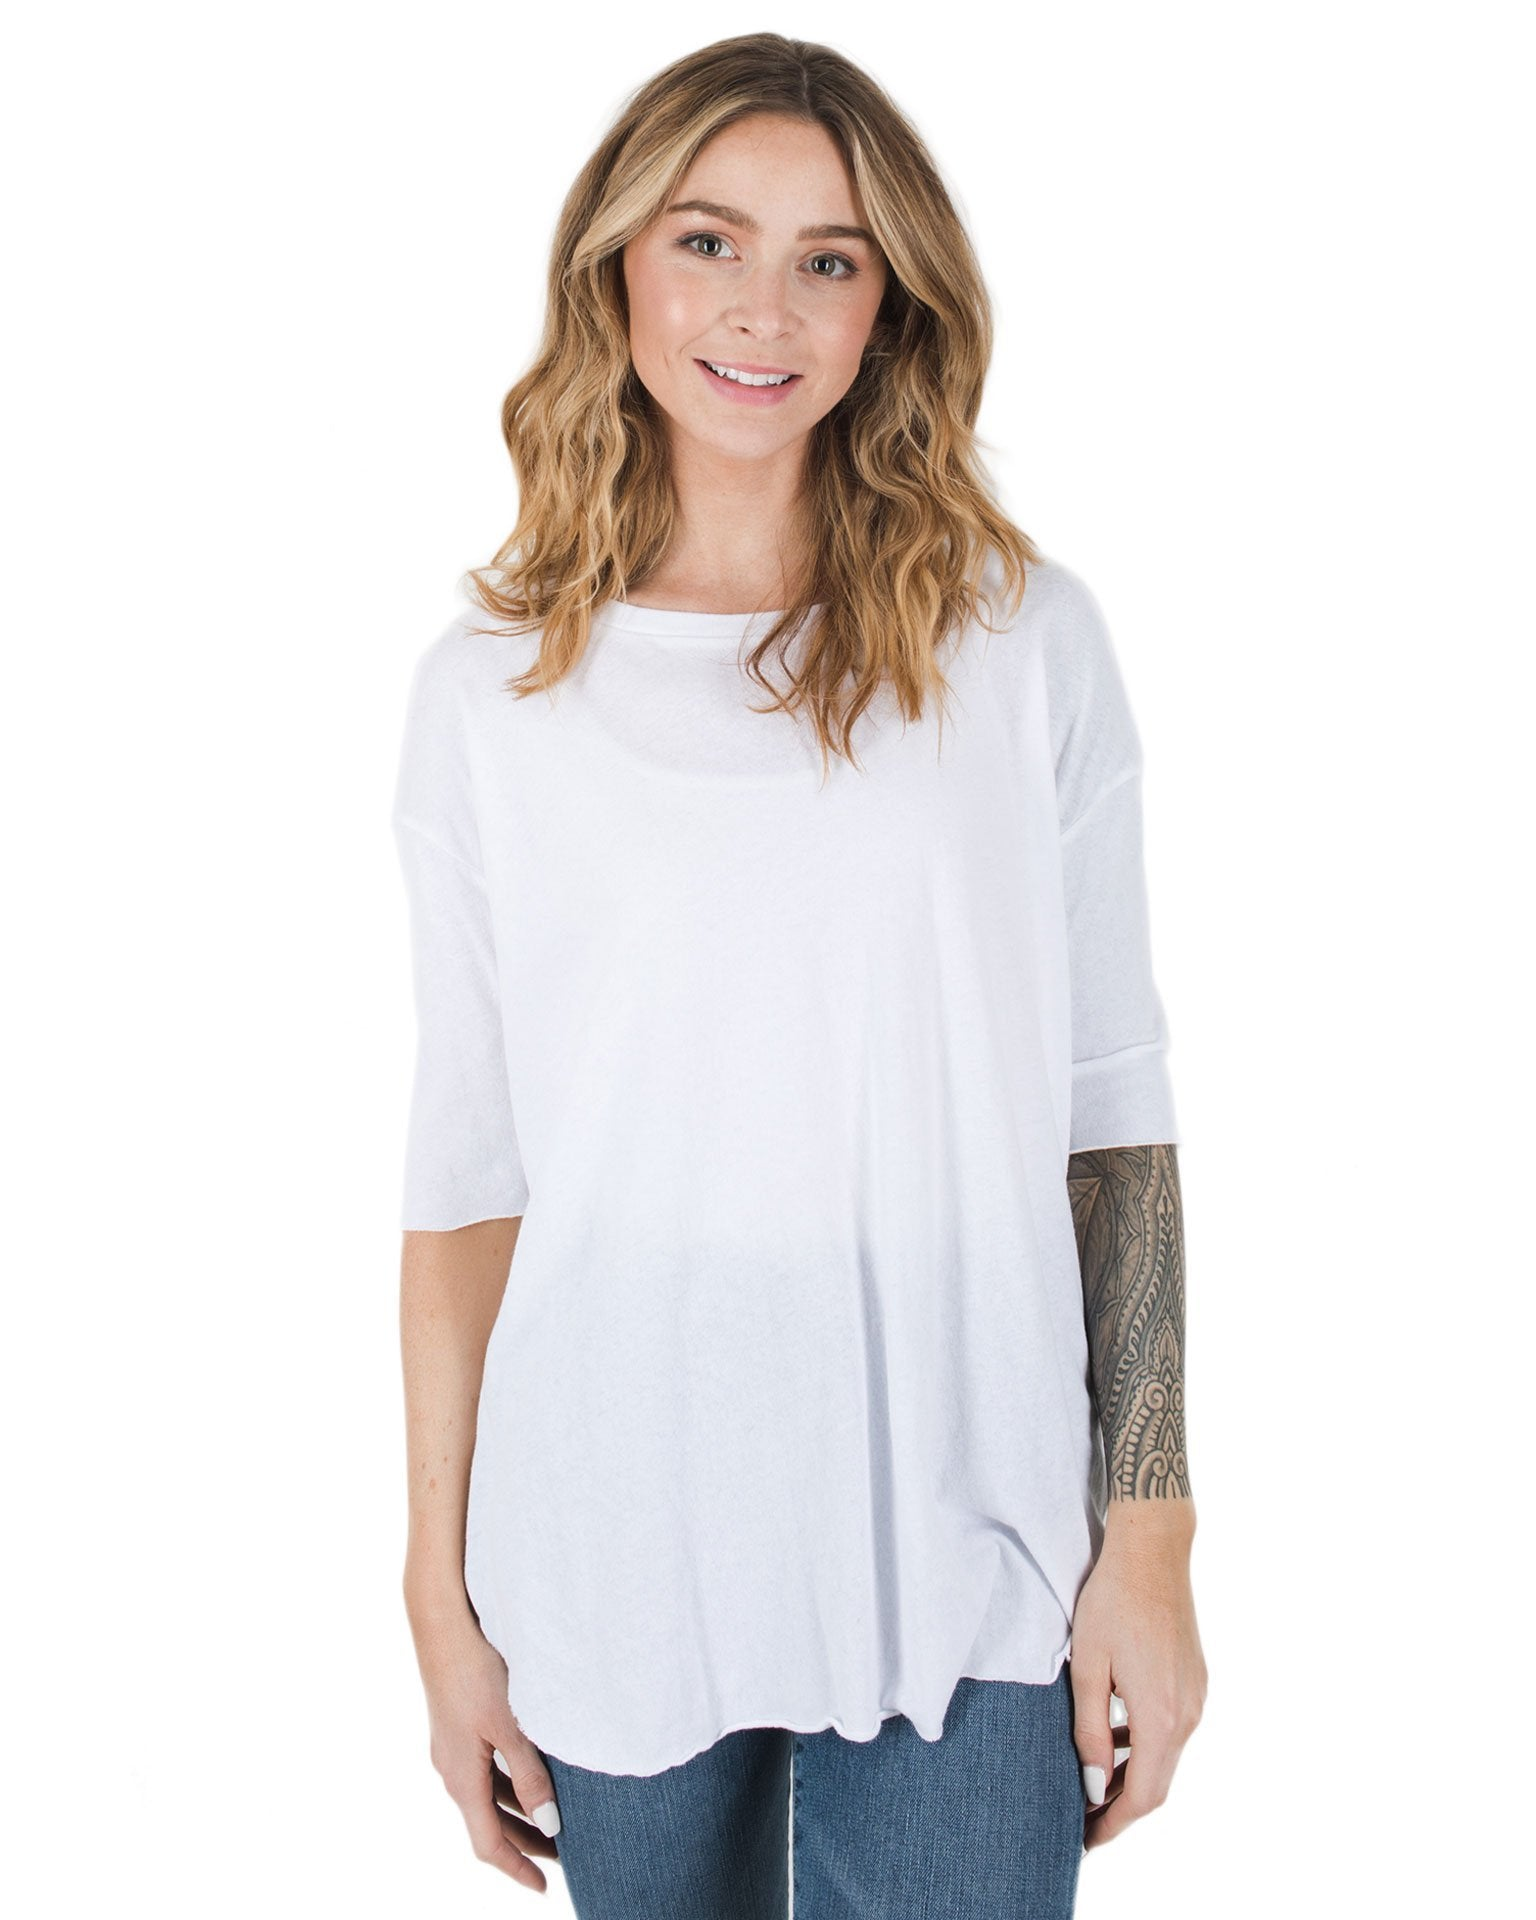 Tee Lab Clothing Whiteout / L Elbow Sleeve Drop Shoulder Tee